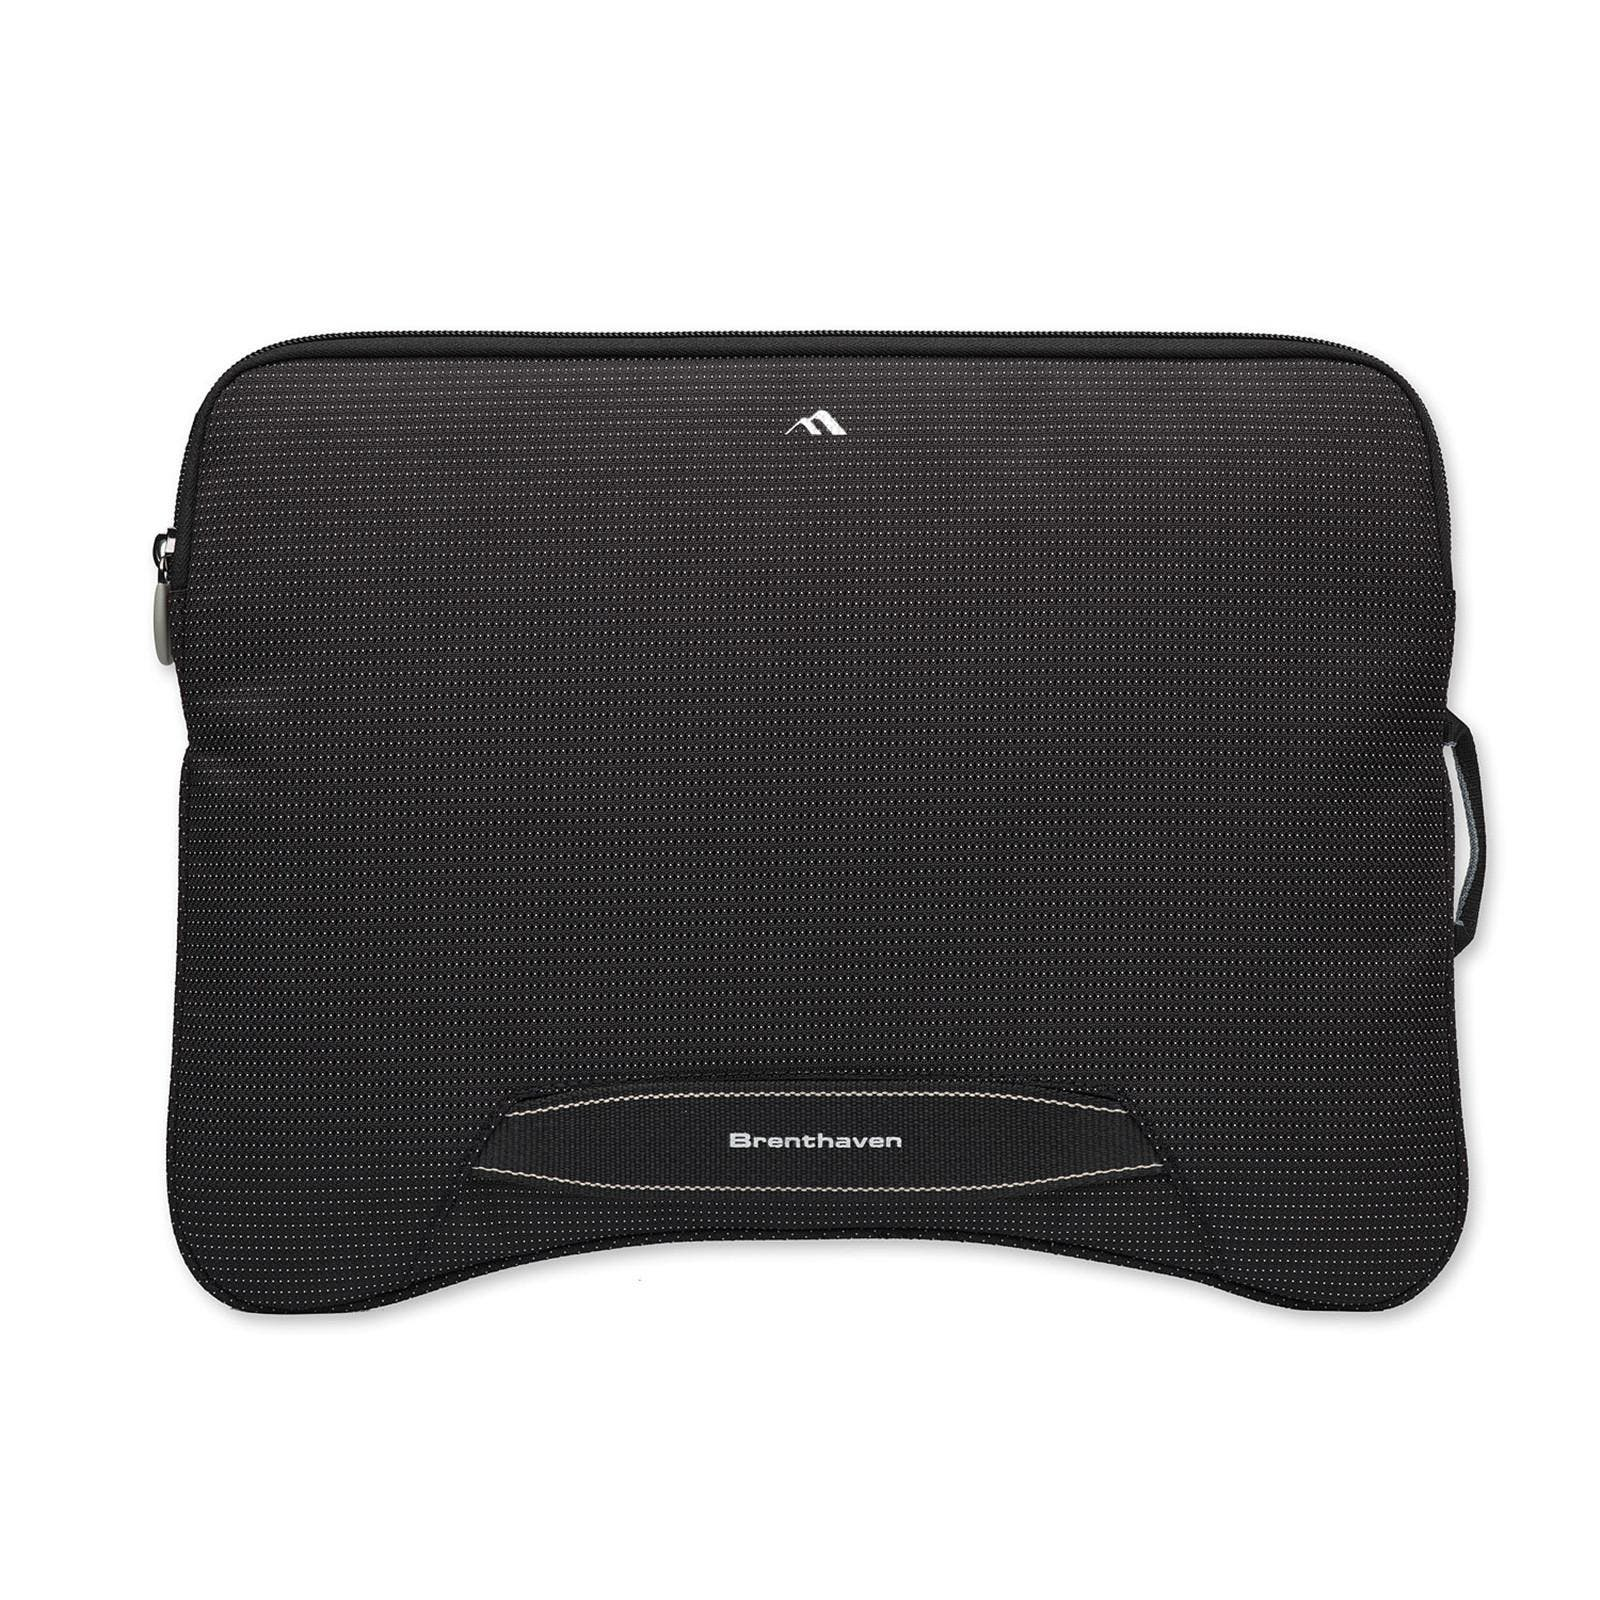 Brenthaven Tred Secure Grip Sleeve with Pouch for 11  Laptops - Black Highlights    * Brenthaven Tred Secure Grip Sleeve with Pouch for 11  Laptops – Black   * Weight: 1.0KGM      1 Year Manufacturer Warranty